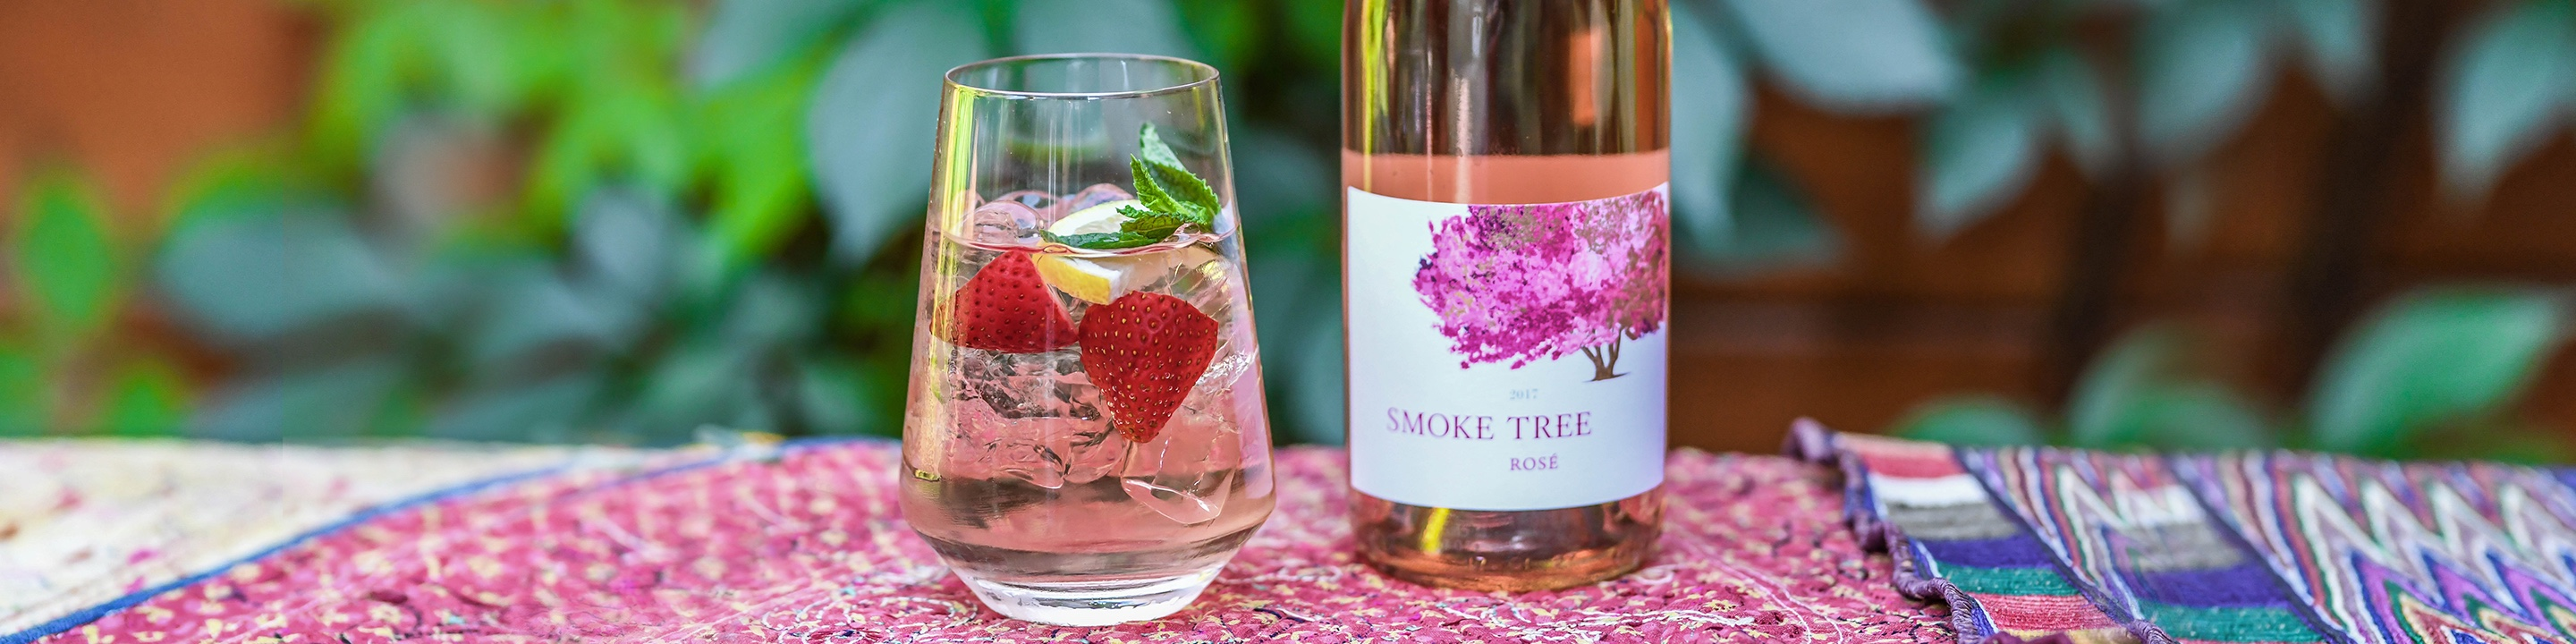 Smoke Tree was named after the American Smoke Tree, whose stunning  beauty requires little to no manipulation. Winemaker, Anne Dempsey builds upon the Smoke Tree tradition of  minimalist, natural winemaking to honor the delicacy and purity of the fruit.